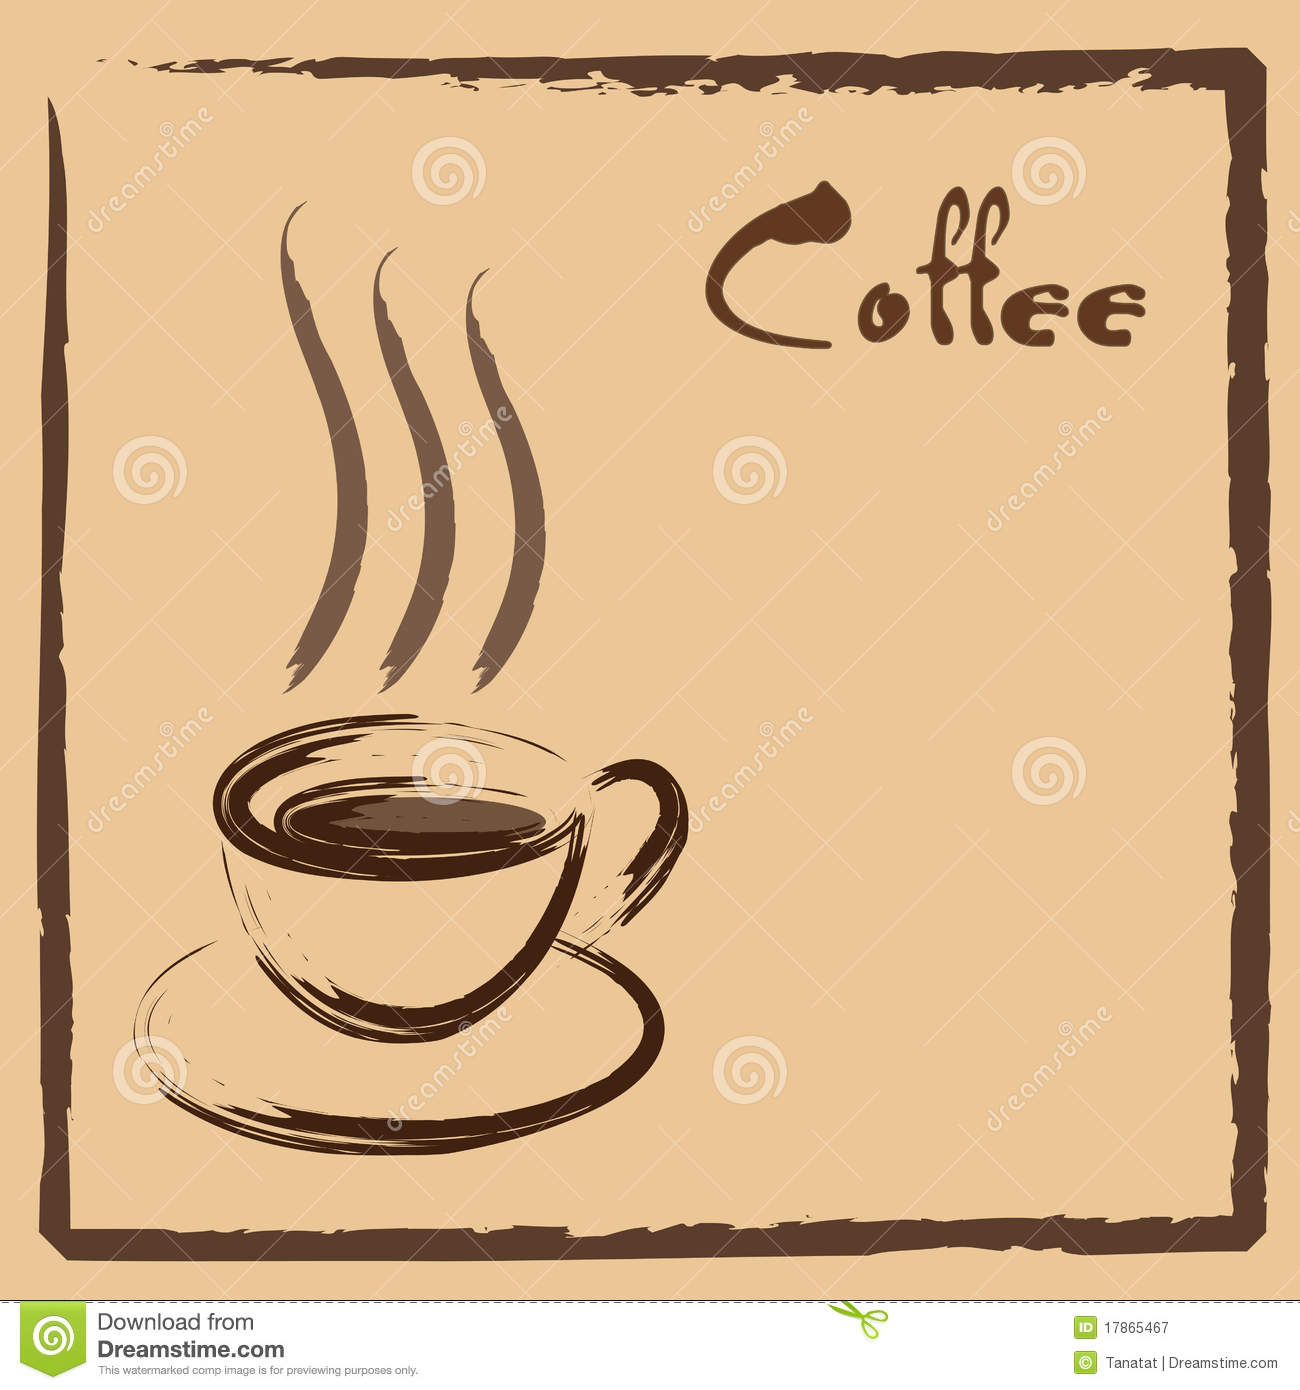 Coffee Sign Royalty Free Stock Photography - Image: 17865467